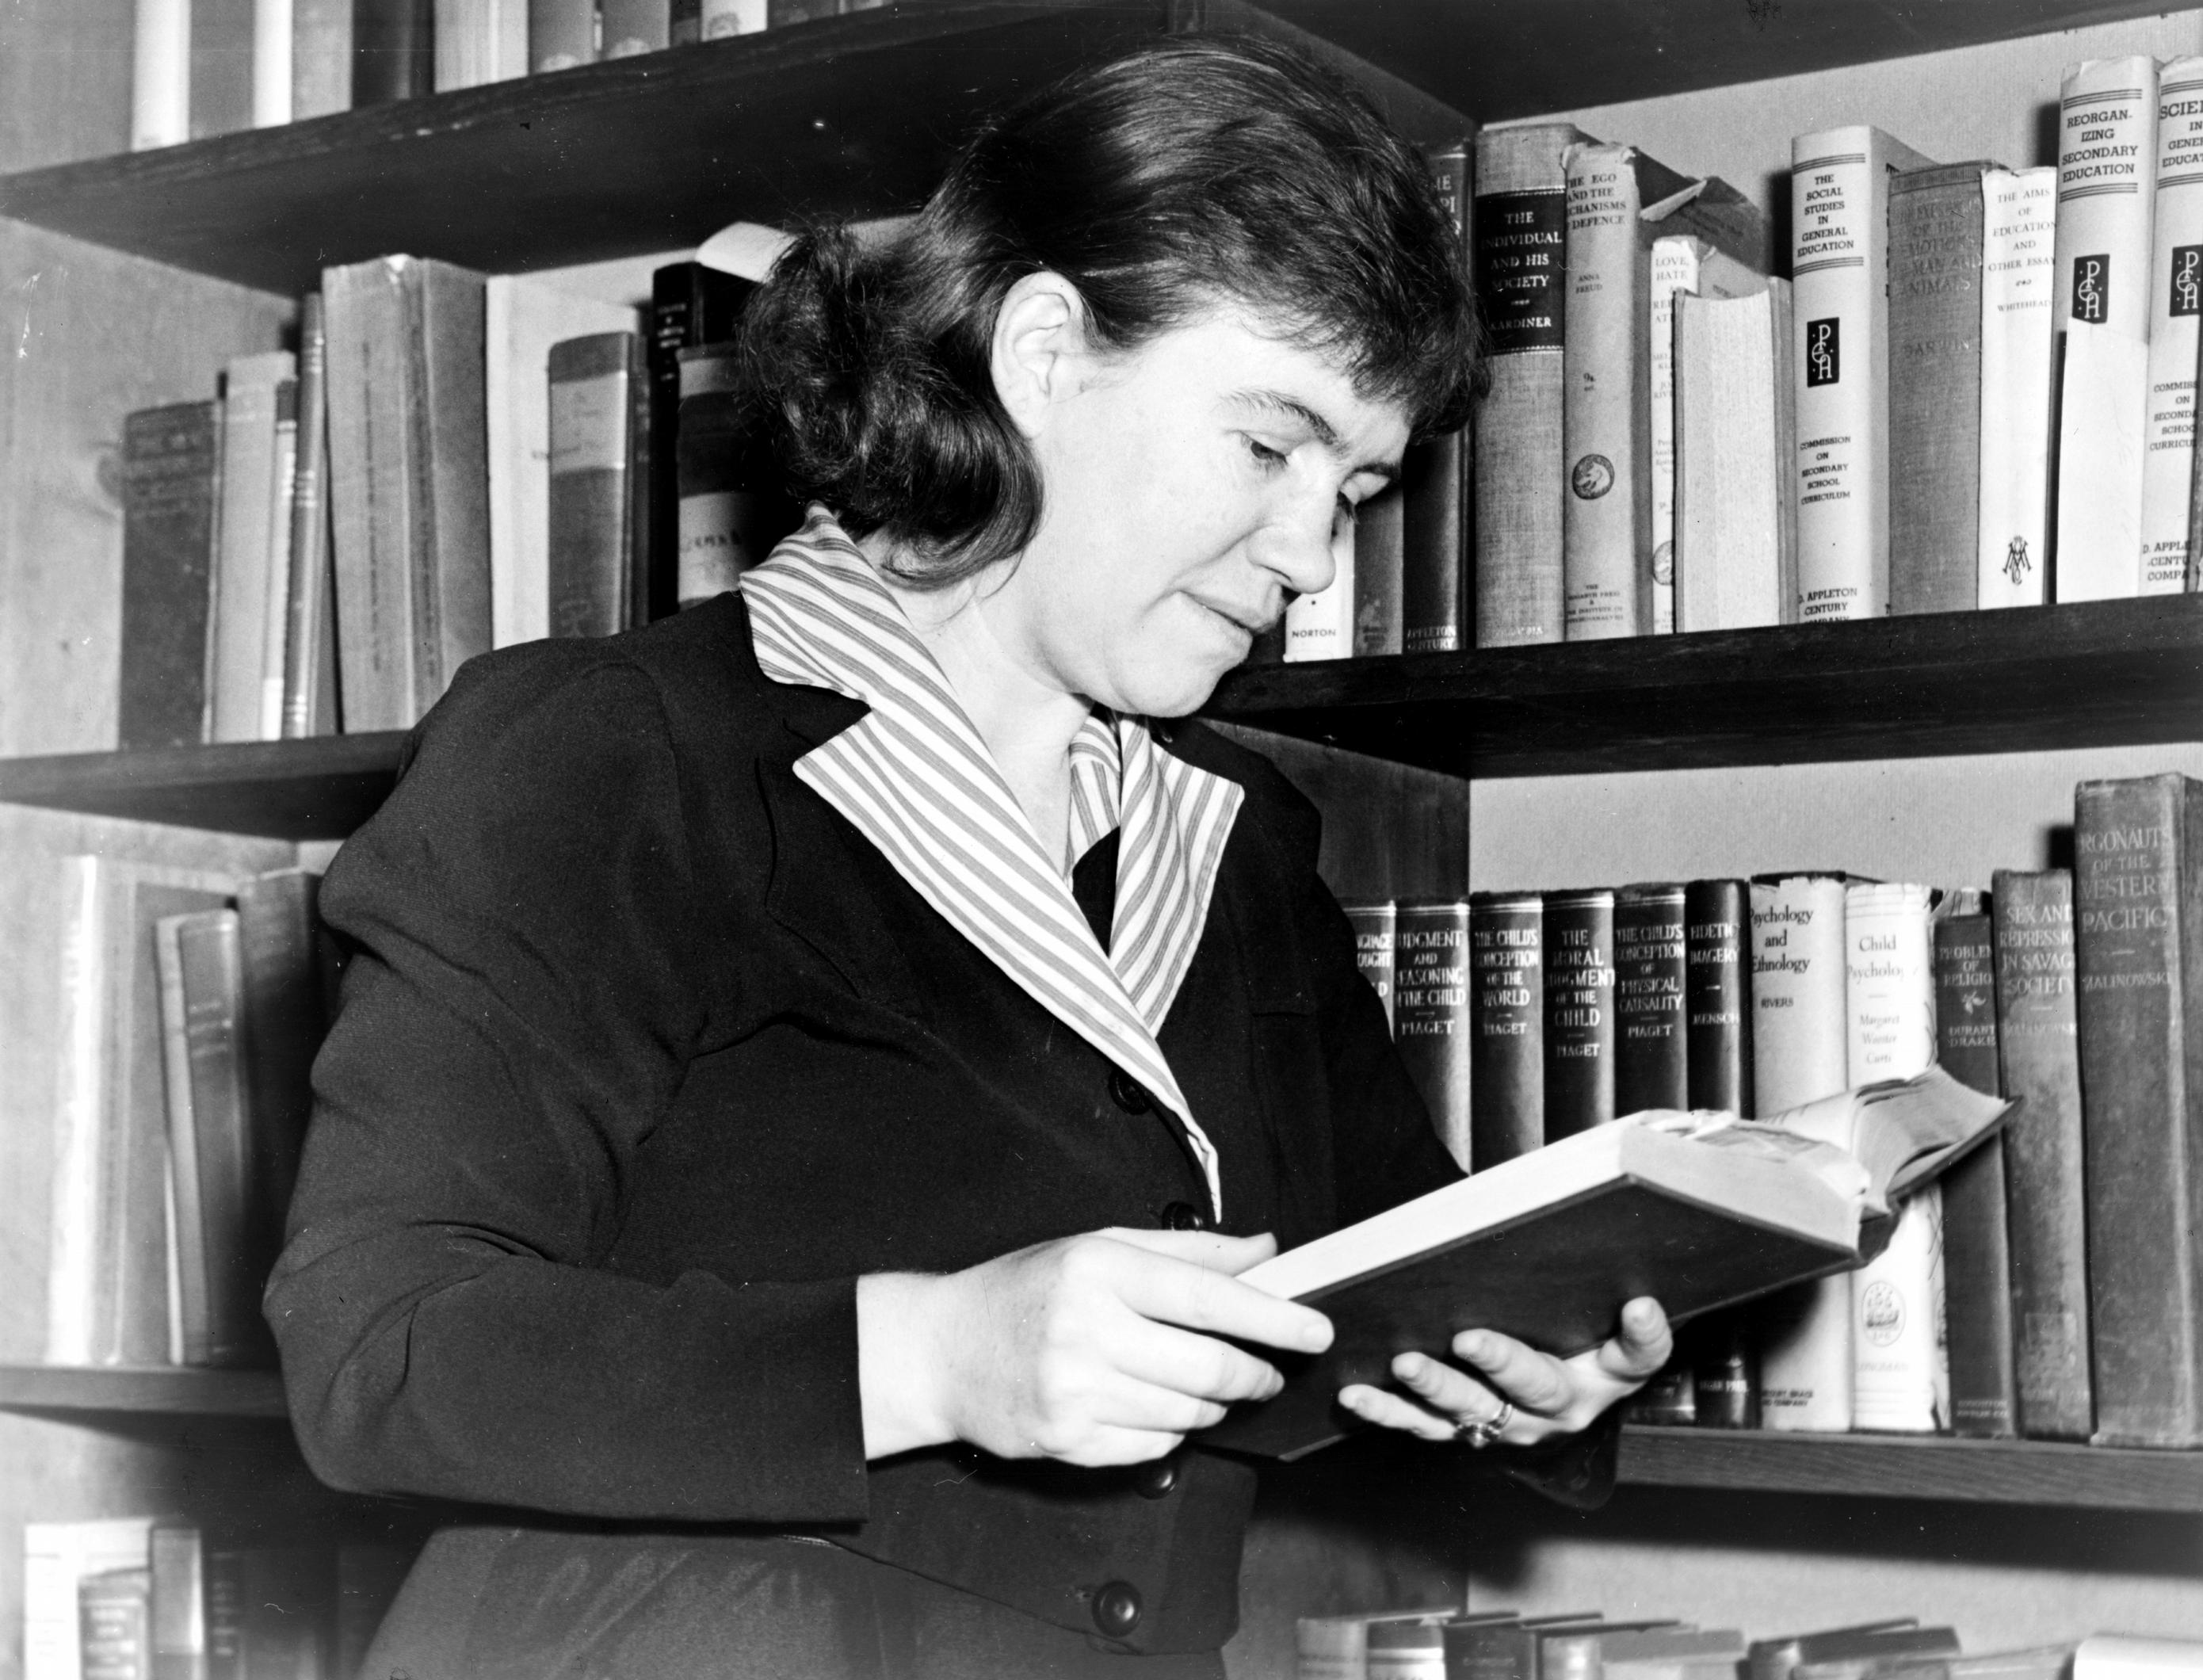 http://upload.wikimedia.org/wikipedia/commons/2/24/Margaret_Mead_NYWTS.jpg